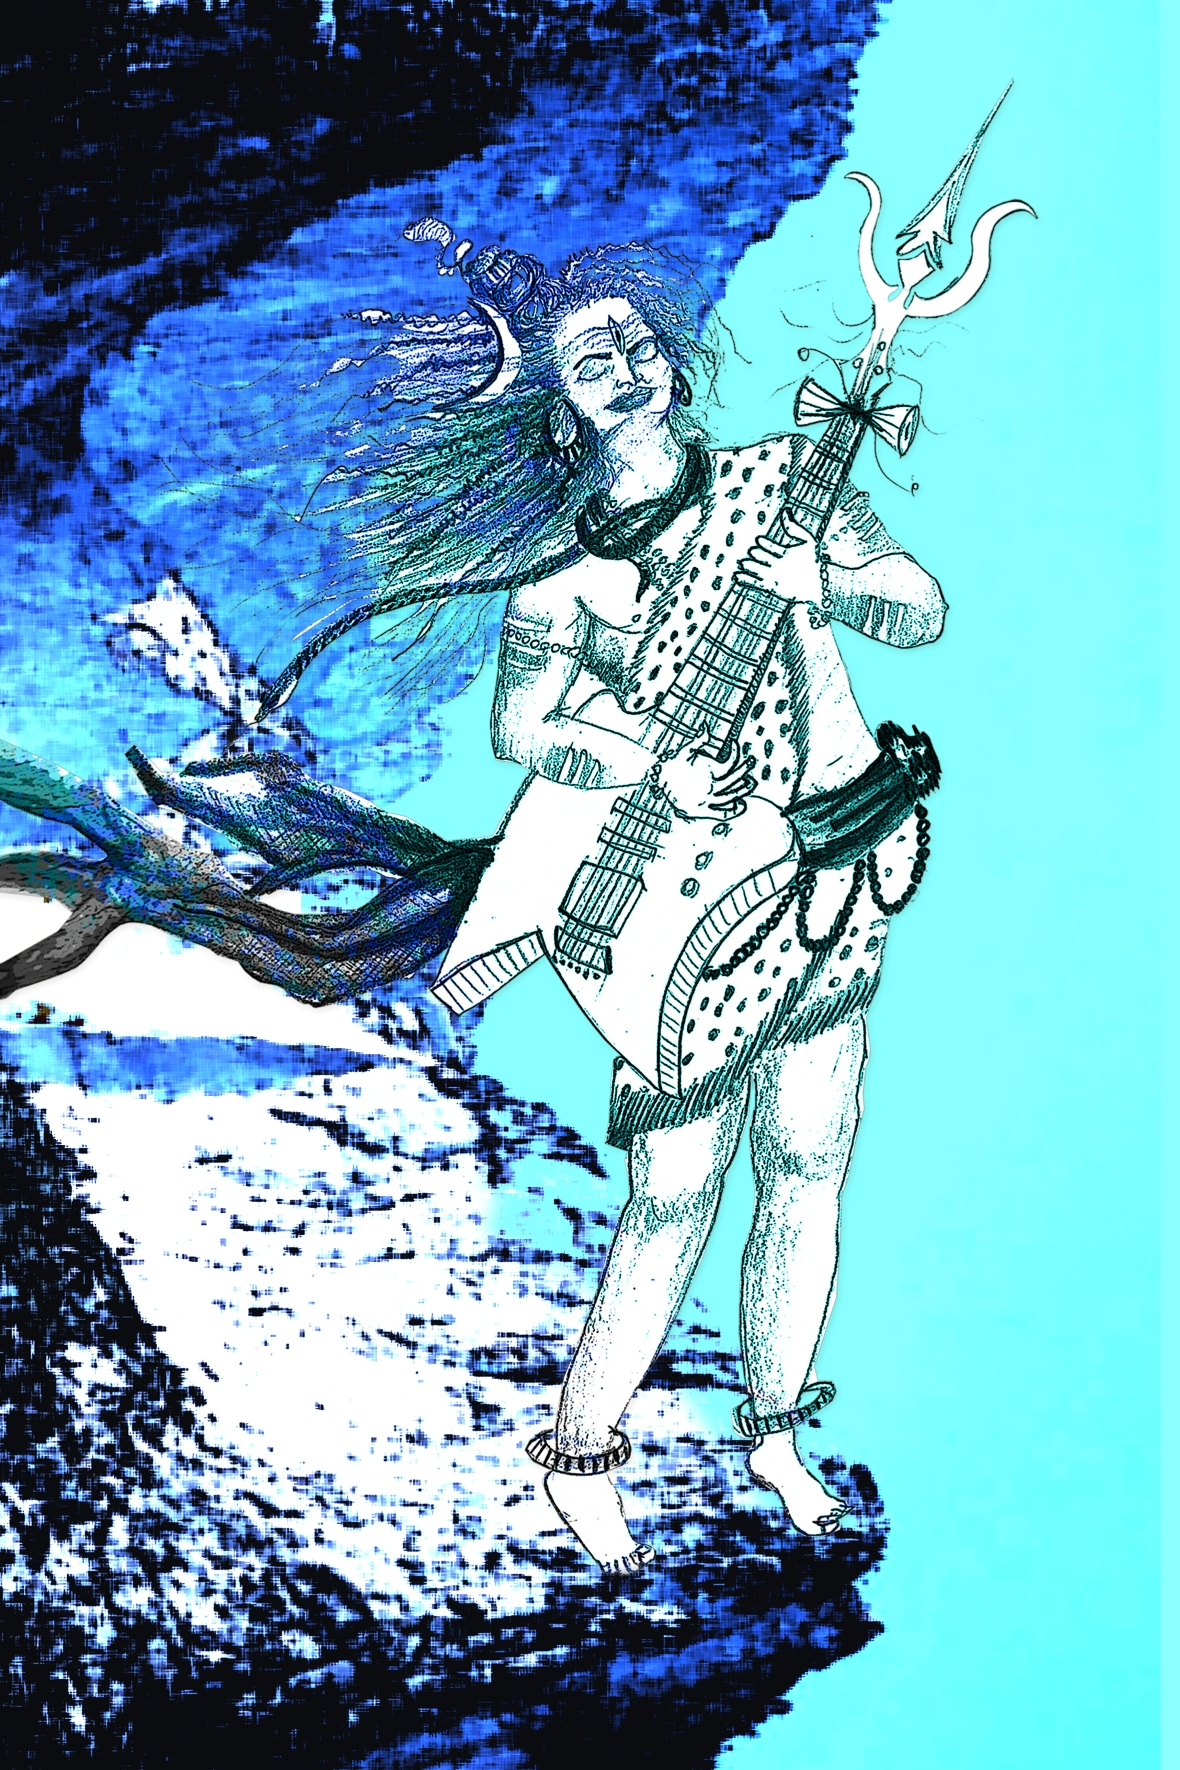 Lord Shiva playing guitar